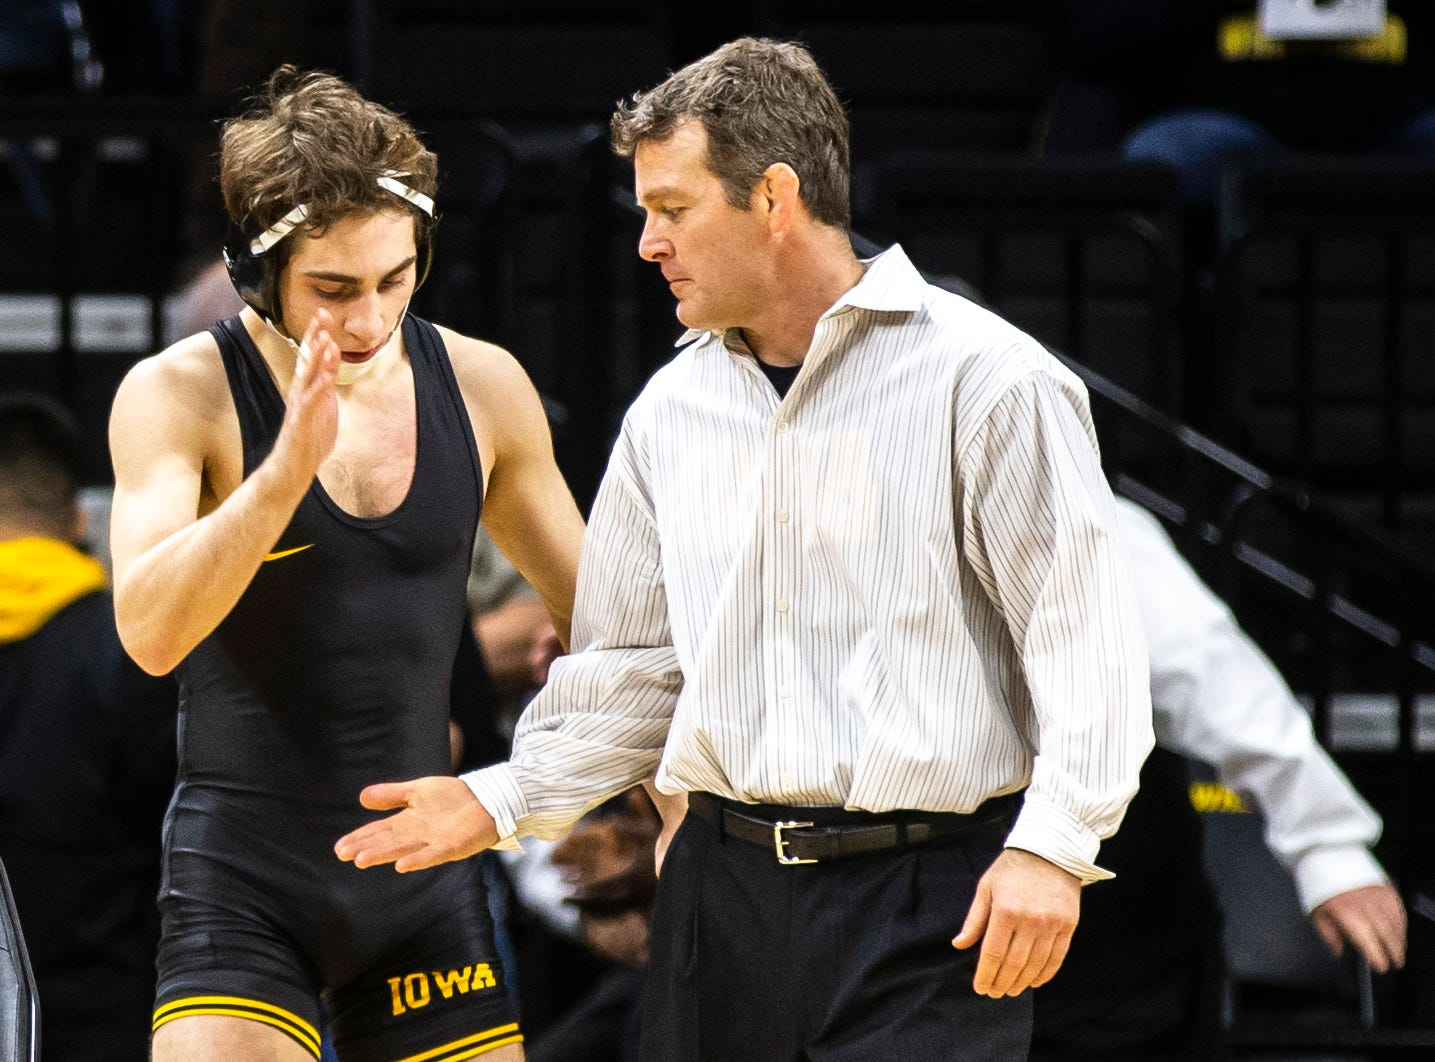 Iowa's Austin DeSanto gives head coach Tom Brands a high-five before his match at 133 a NCAA Big Ten Conference wrestling dual on Friday, Feb. 15, 2019 at Carver-Hawkeye Arena in Iowa City, Iowa.